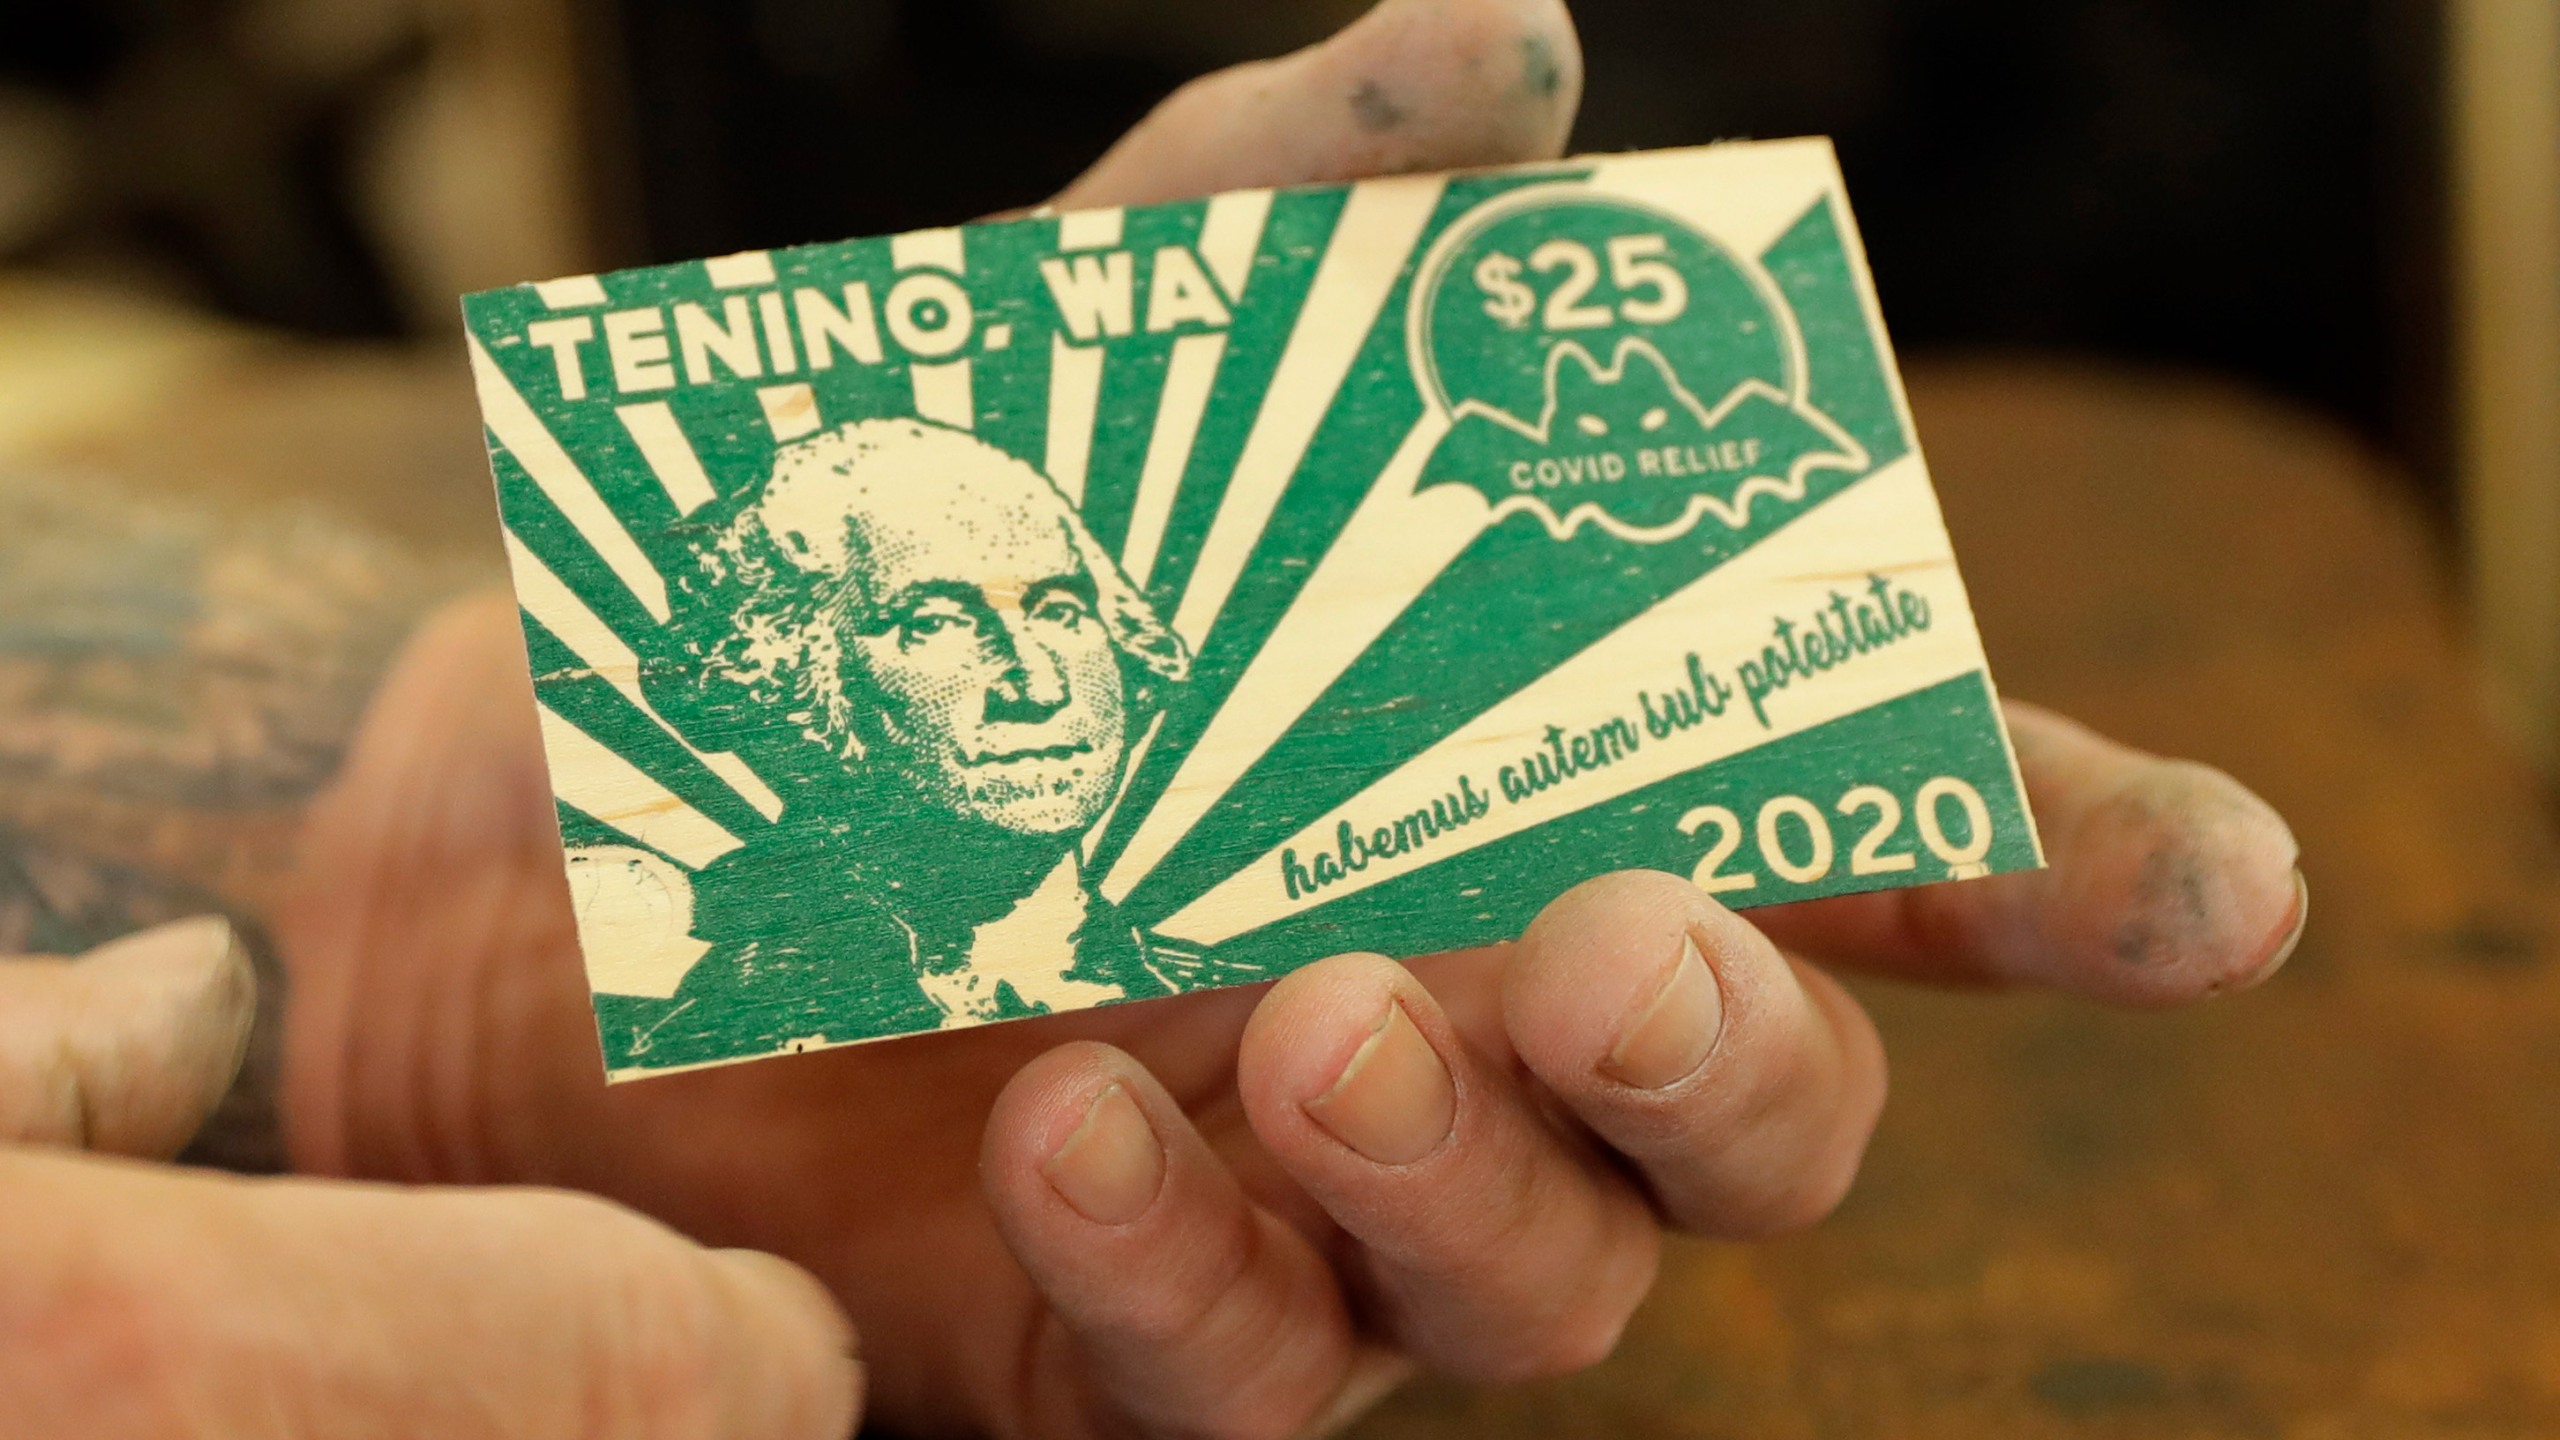 In this May 21, 2020, Loren Ackerman holds a piece of wooden money he printed on an 1890s-era press in Tenino, Wash. In an effort to help residents and local merchants alike get through the economic fallout of the coronavirus pandemic, the small town has issued wooden currency for residents to spend at local businesses, decades after it created a similar program during the Great Depression. (AP Photo/Ted S. Warren)